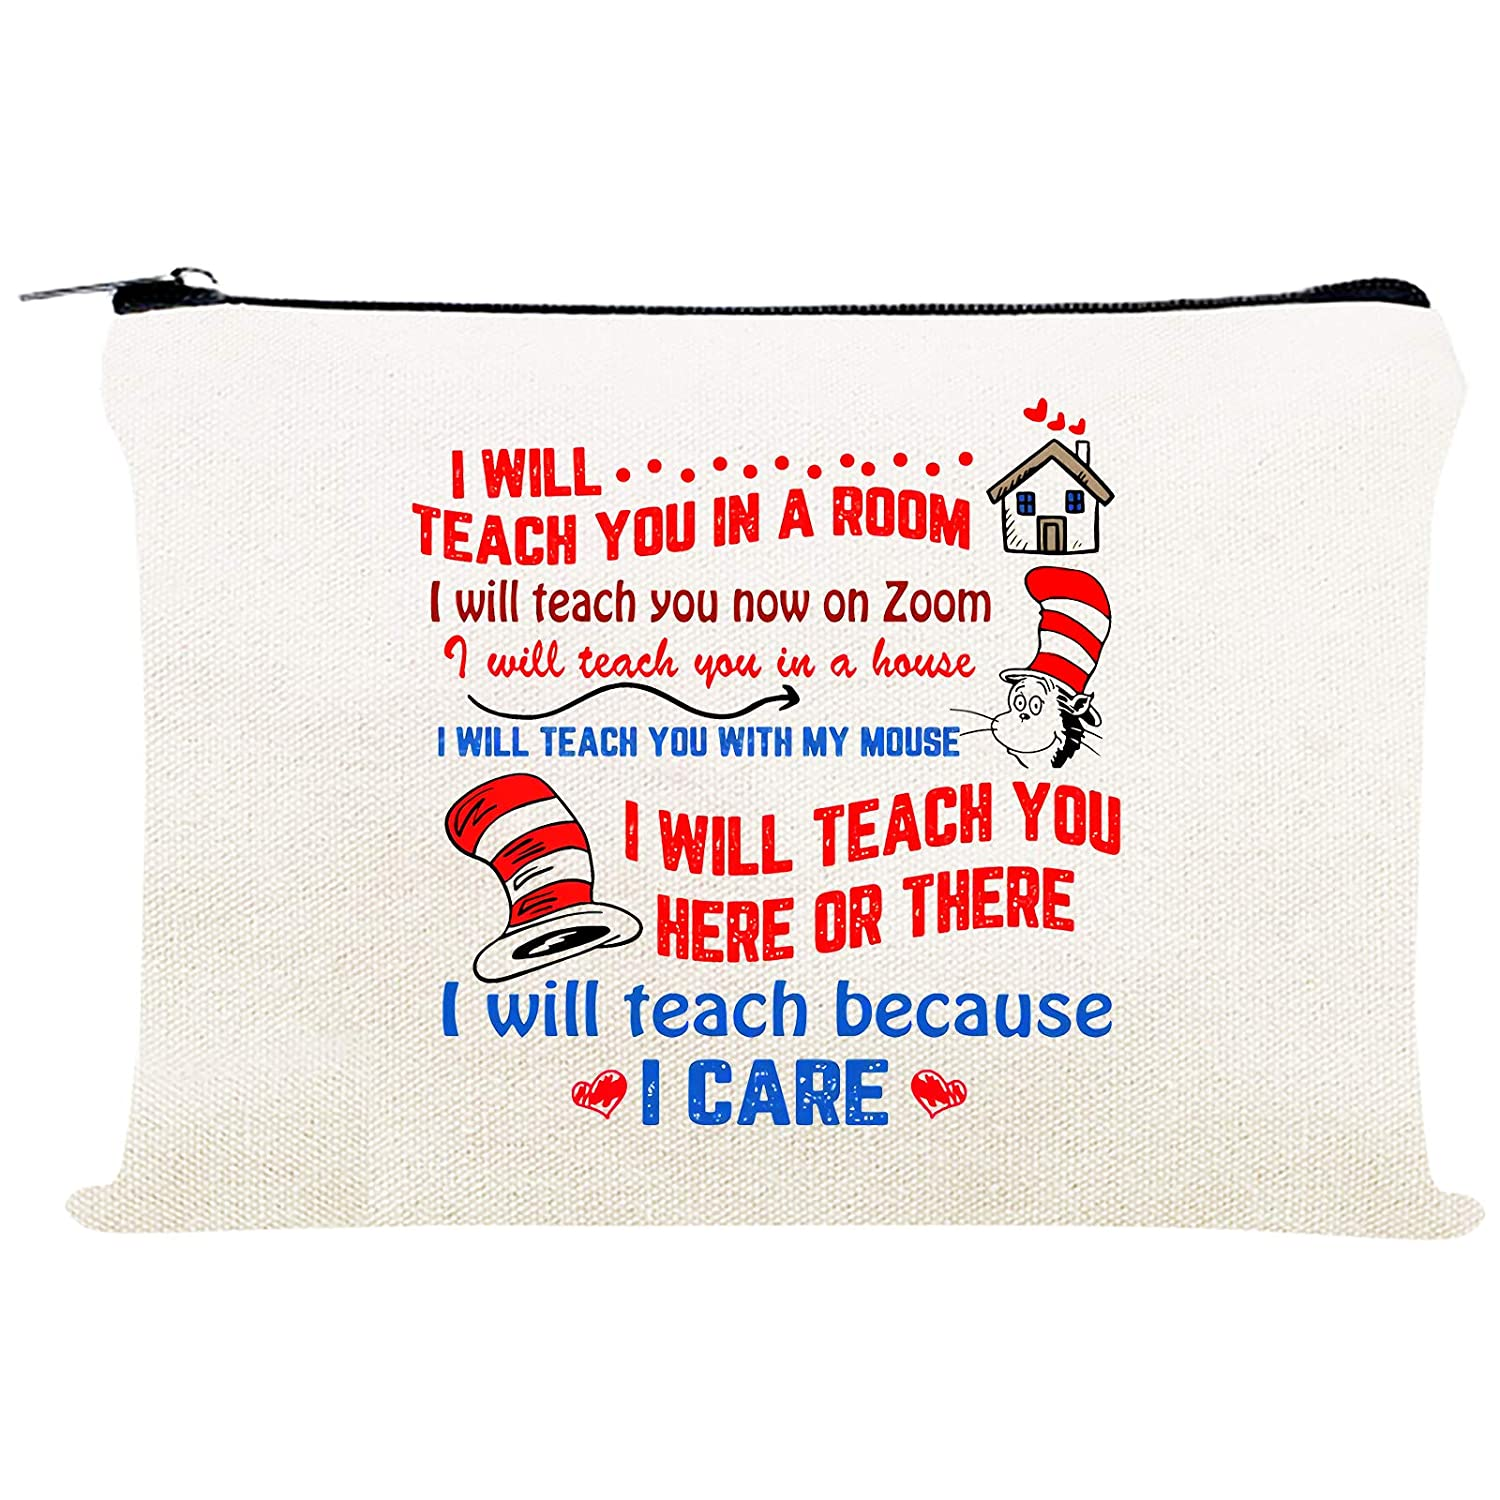 Dr. Seuss cosmetic pouch